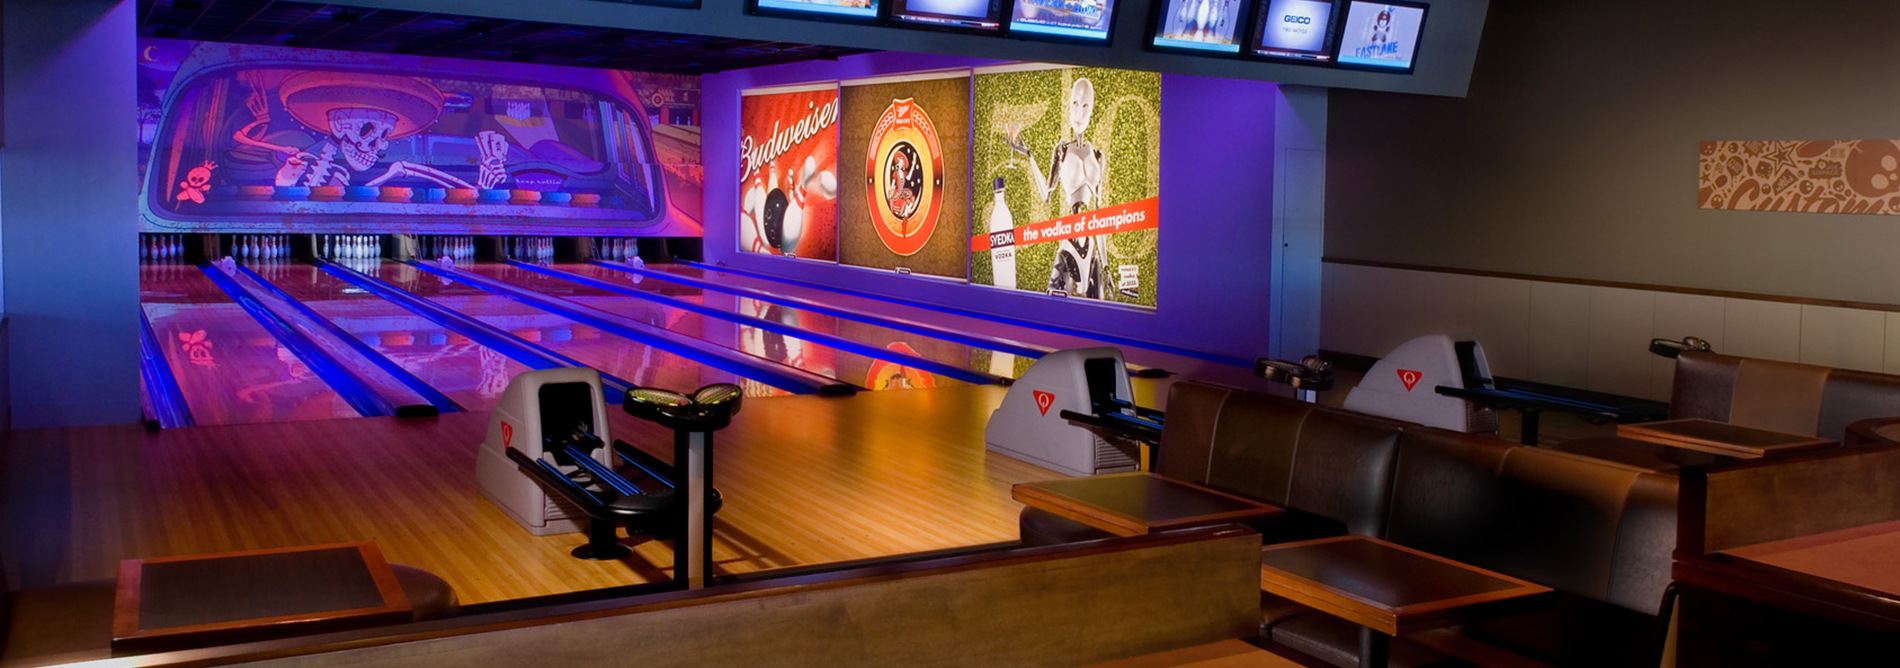 QUBICAAMF-bowling-boutique-East-Village-Tavern-and-Bowl-banner.jpg